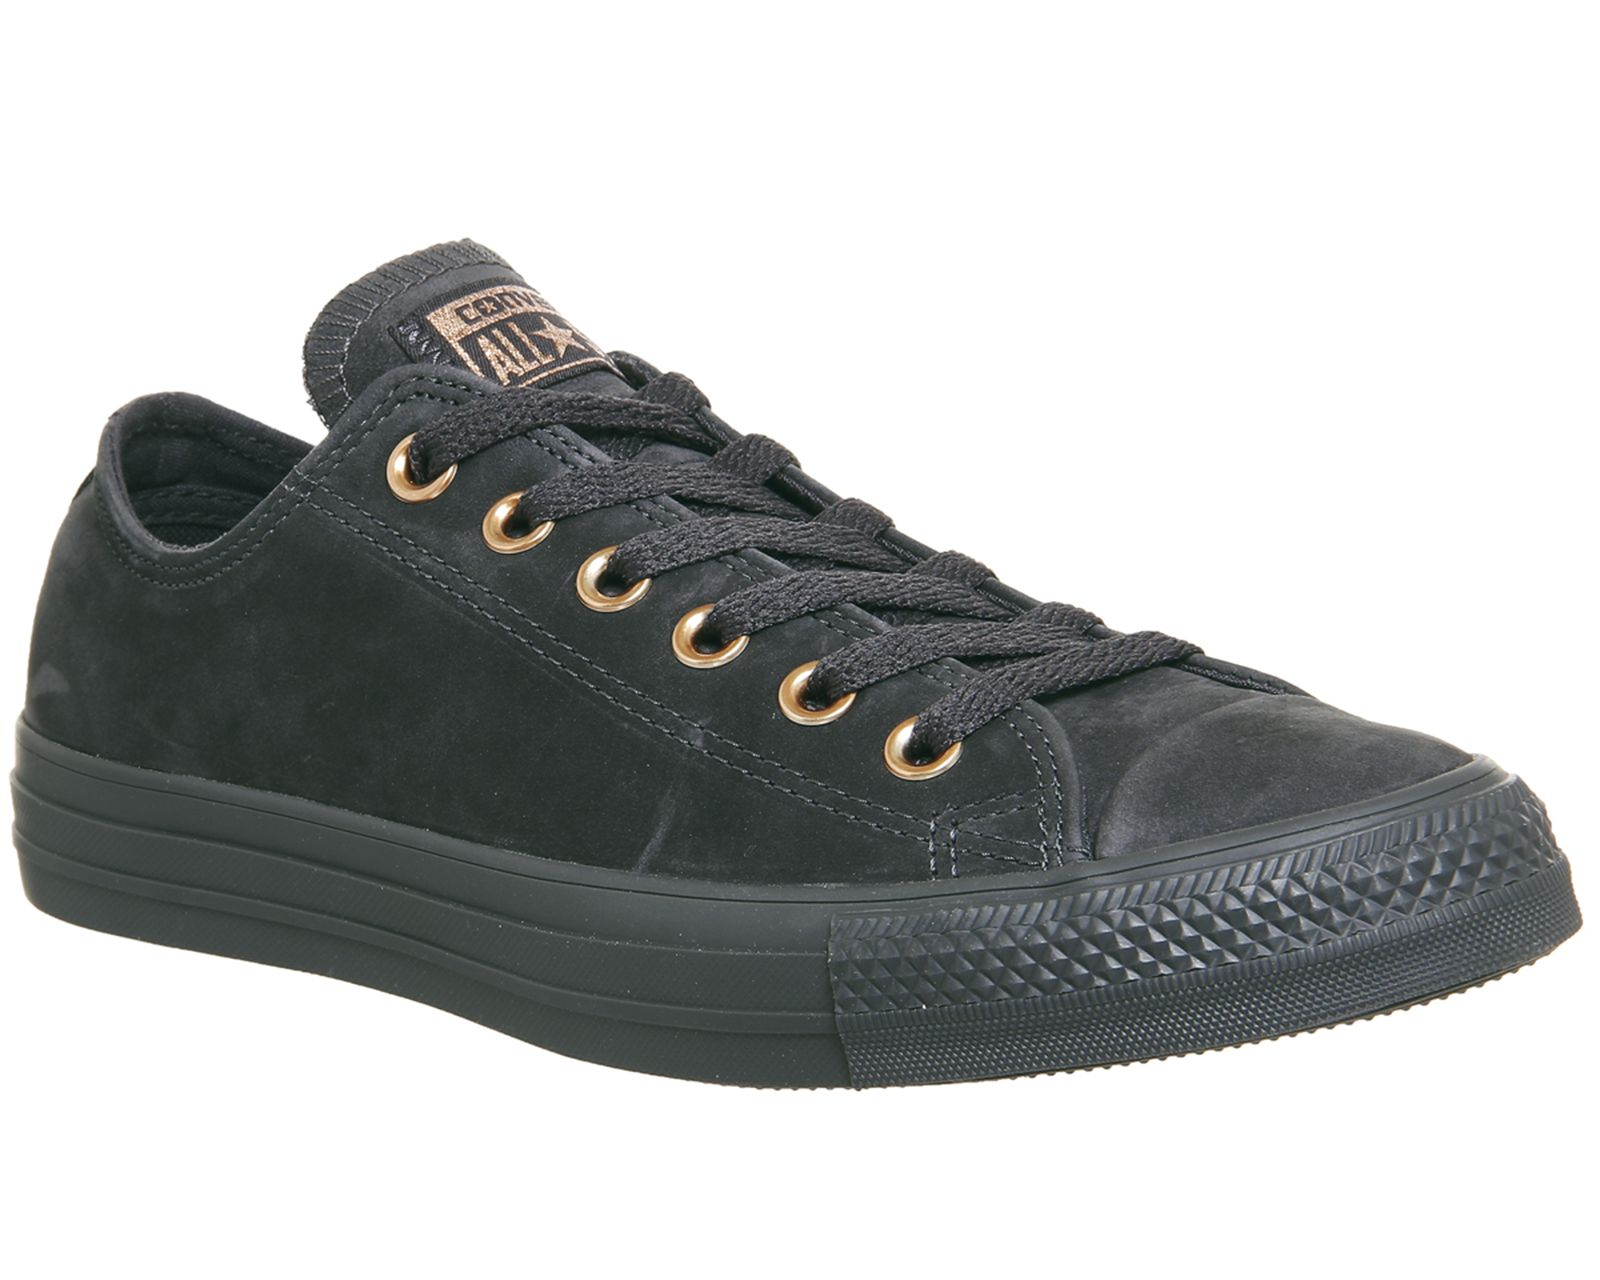 Converse All Star Low Leather Almost